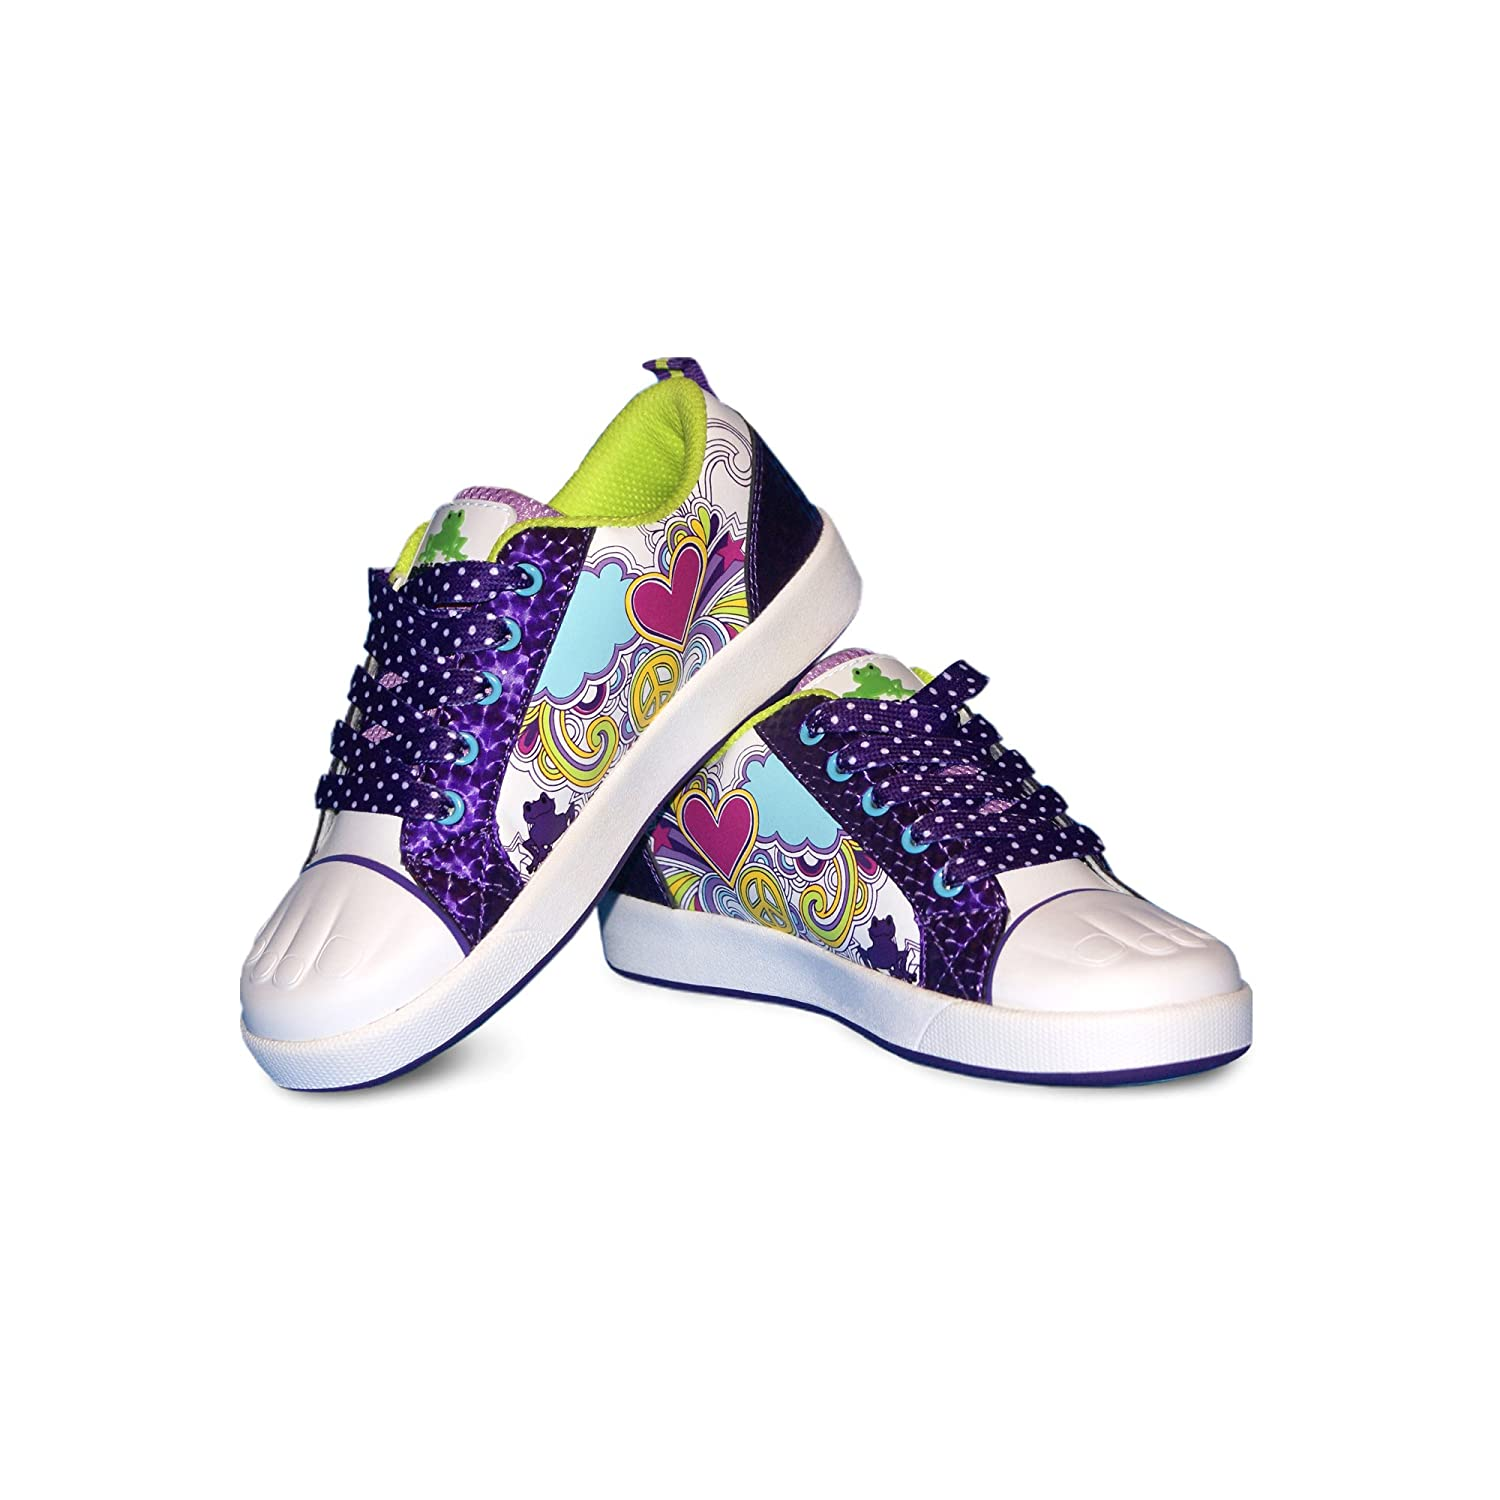 Bobbi-Toads Girl's Shoes, Hillary-Purple/Lt. Blue RJ Stanley Corp. 2011 Hillary Size 11